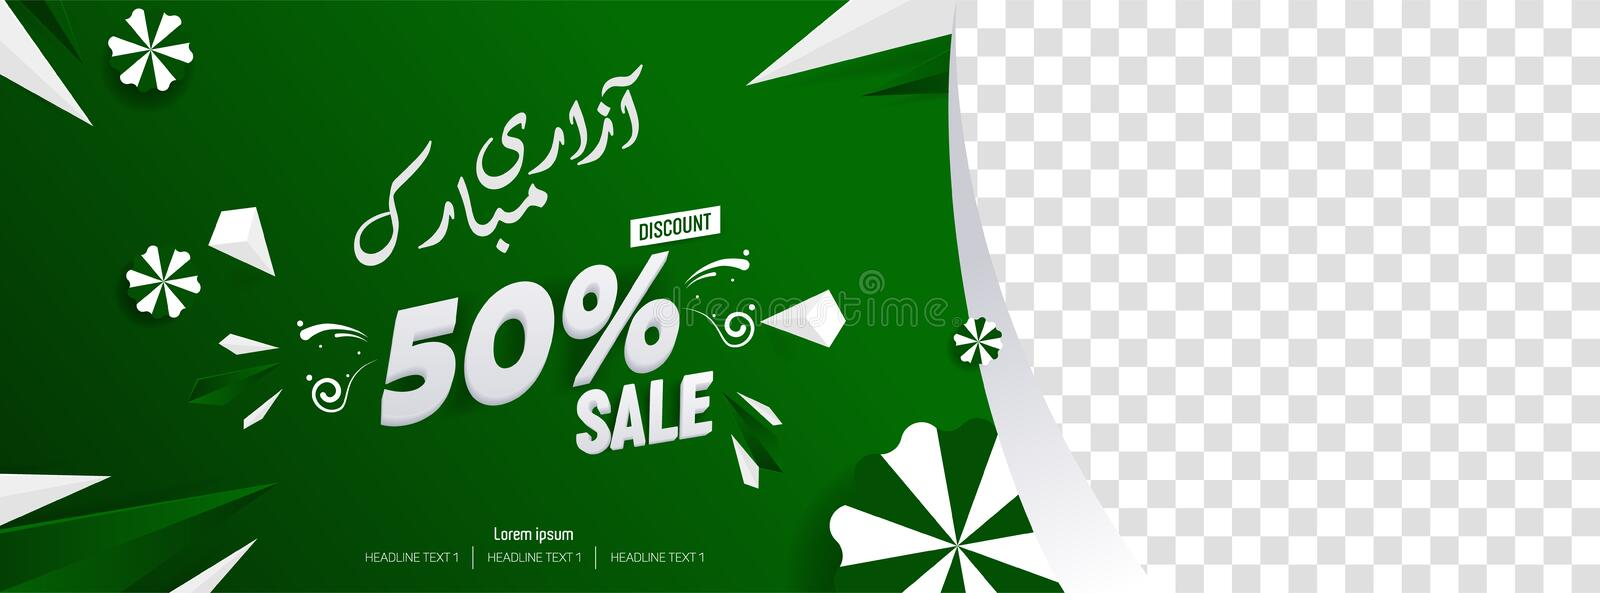 Jashn-e-azadi Mubarak Pakistani Independence Day vector illustration